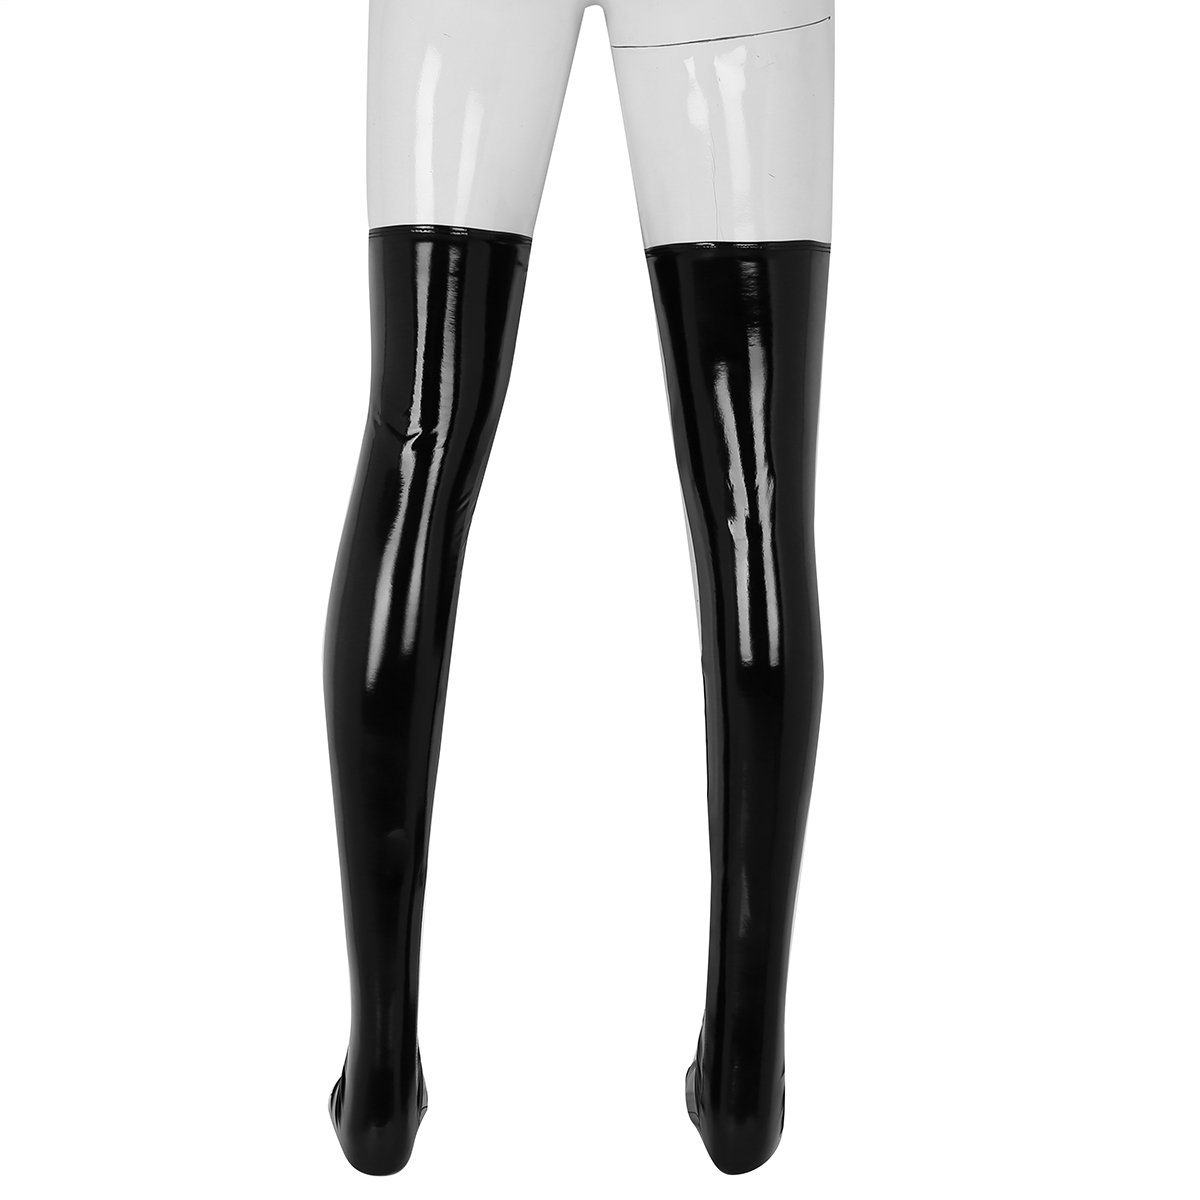 53a8aacb481 Amazon.com  ACSUSS Men s Wetlook PVC Leather Thigh High Footed Stockings  Tights Clubwear  Clothing